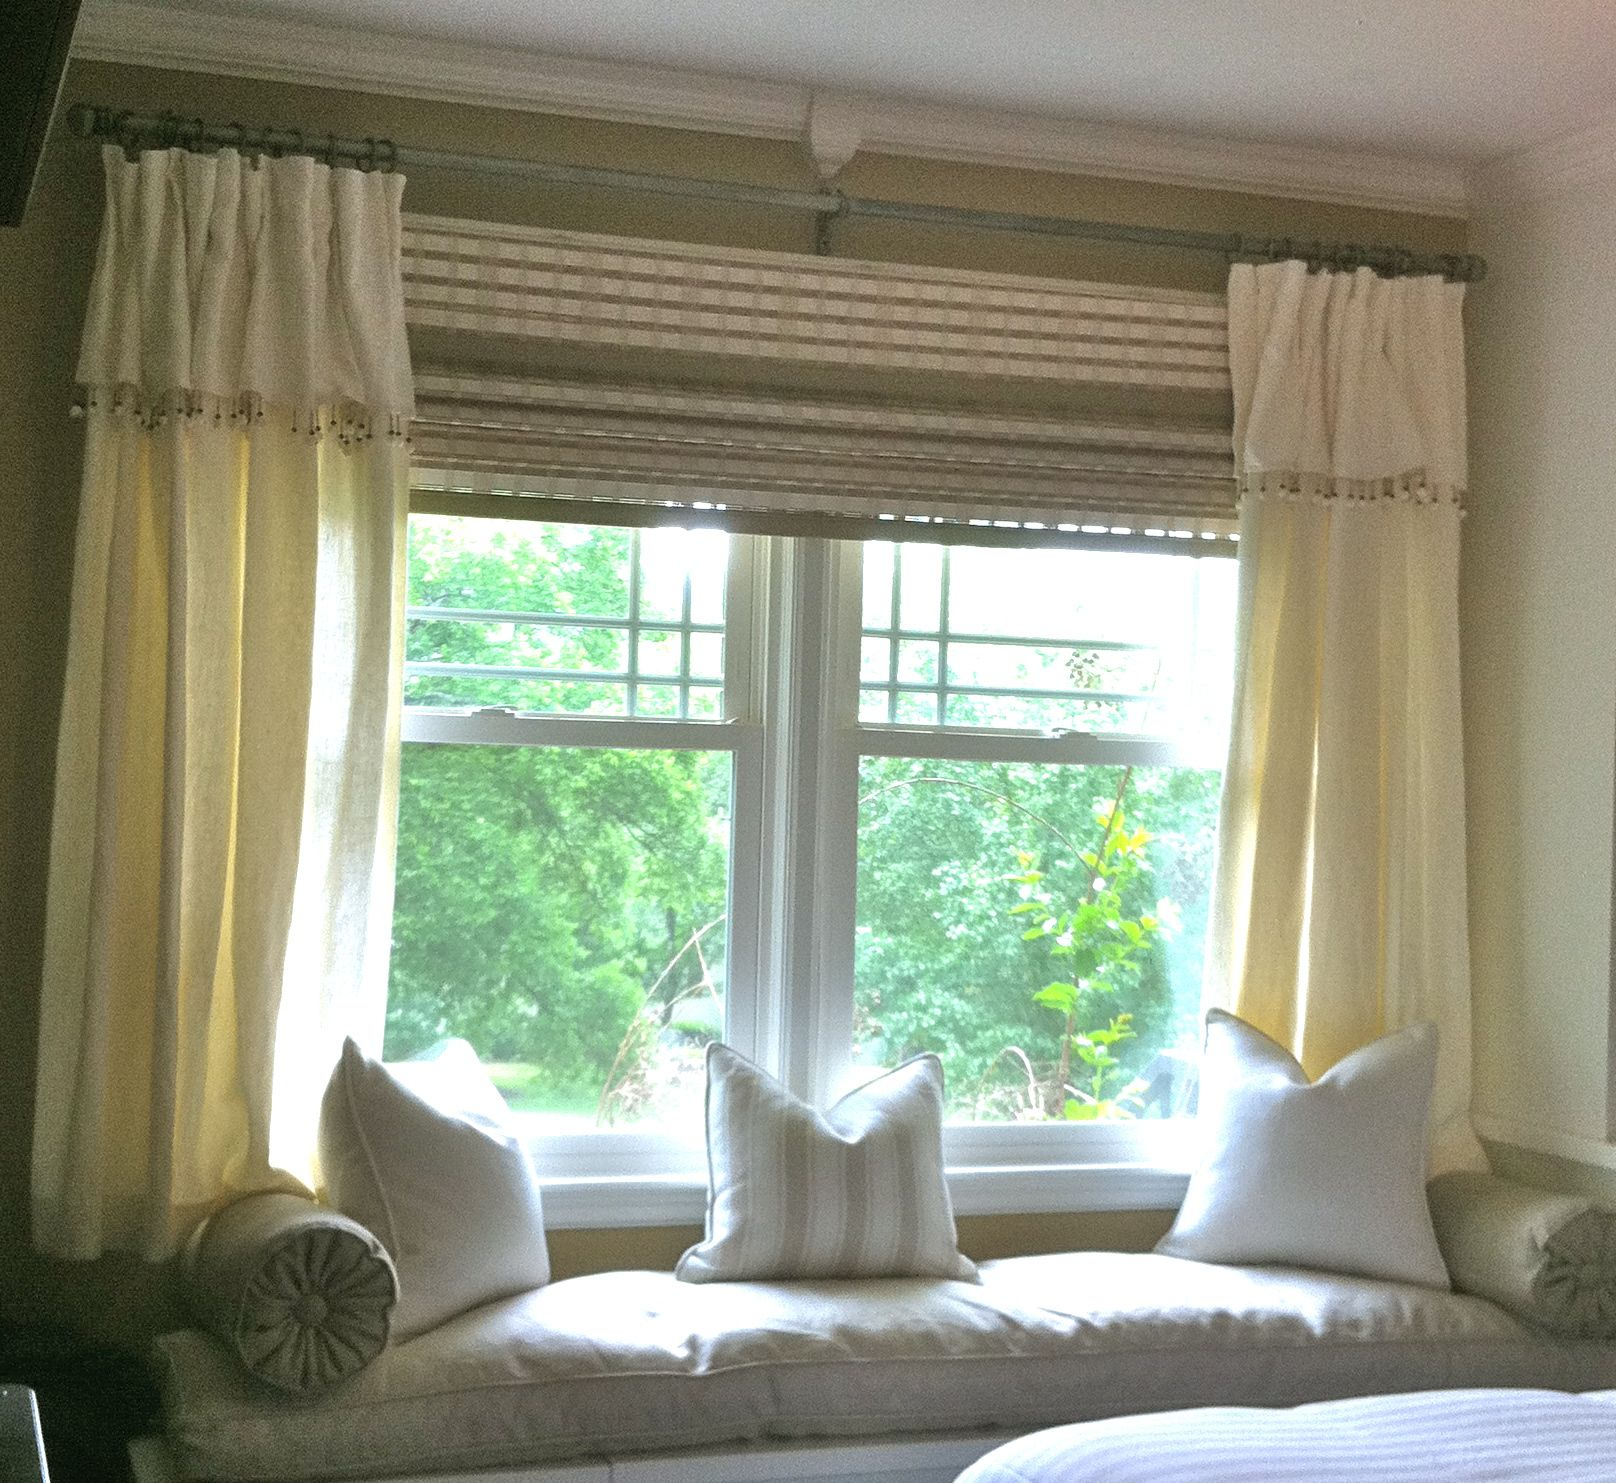 Bay window with window seat treatments - Depiction Of How To Choose The Right Window Treatments For Wide Windows So That They Appear